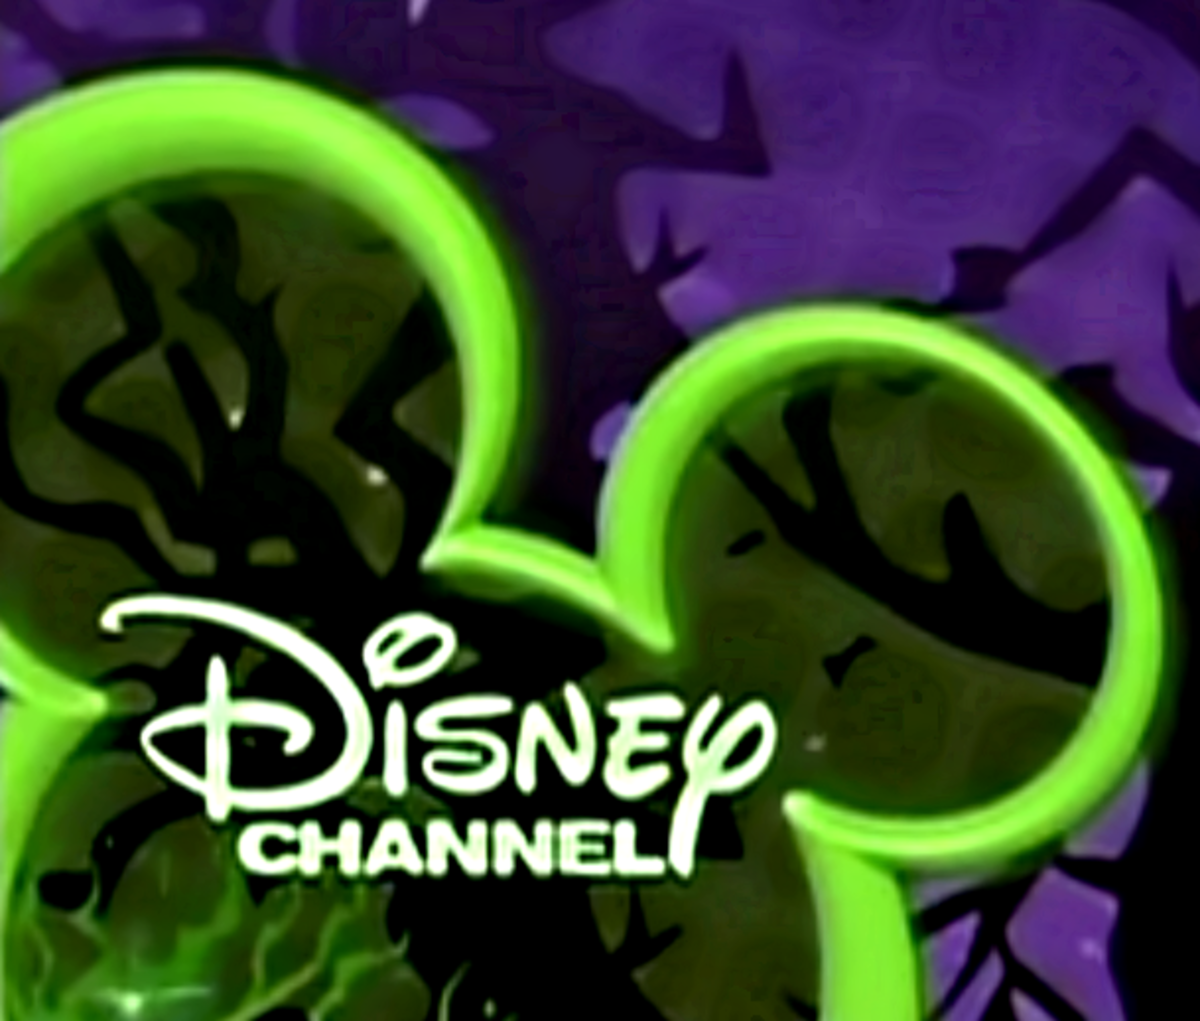 The Disney Channel logo dresses up in green and purple for Halloween fun!